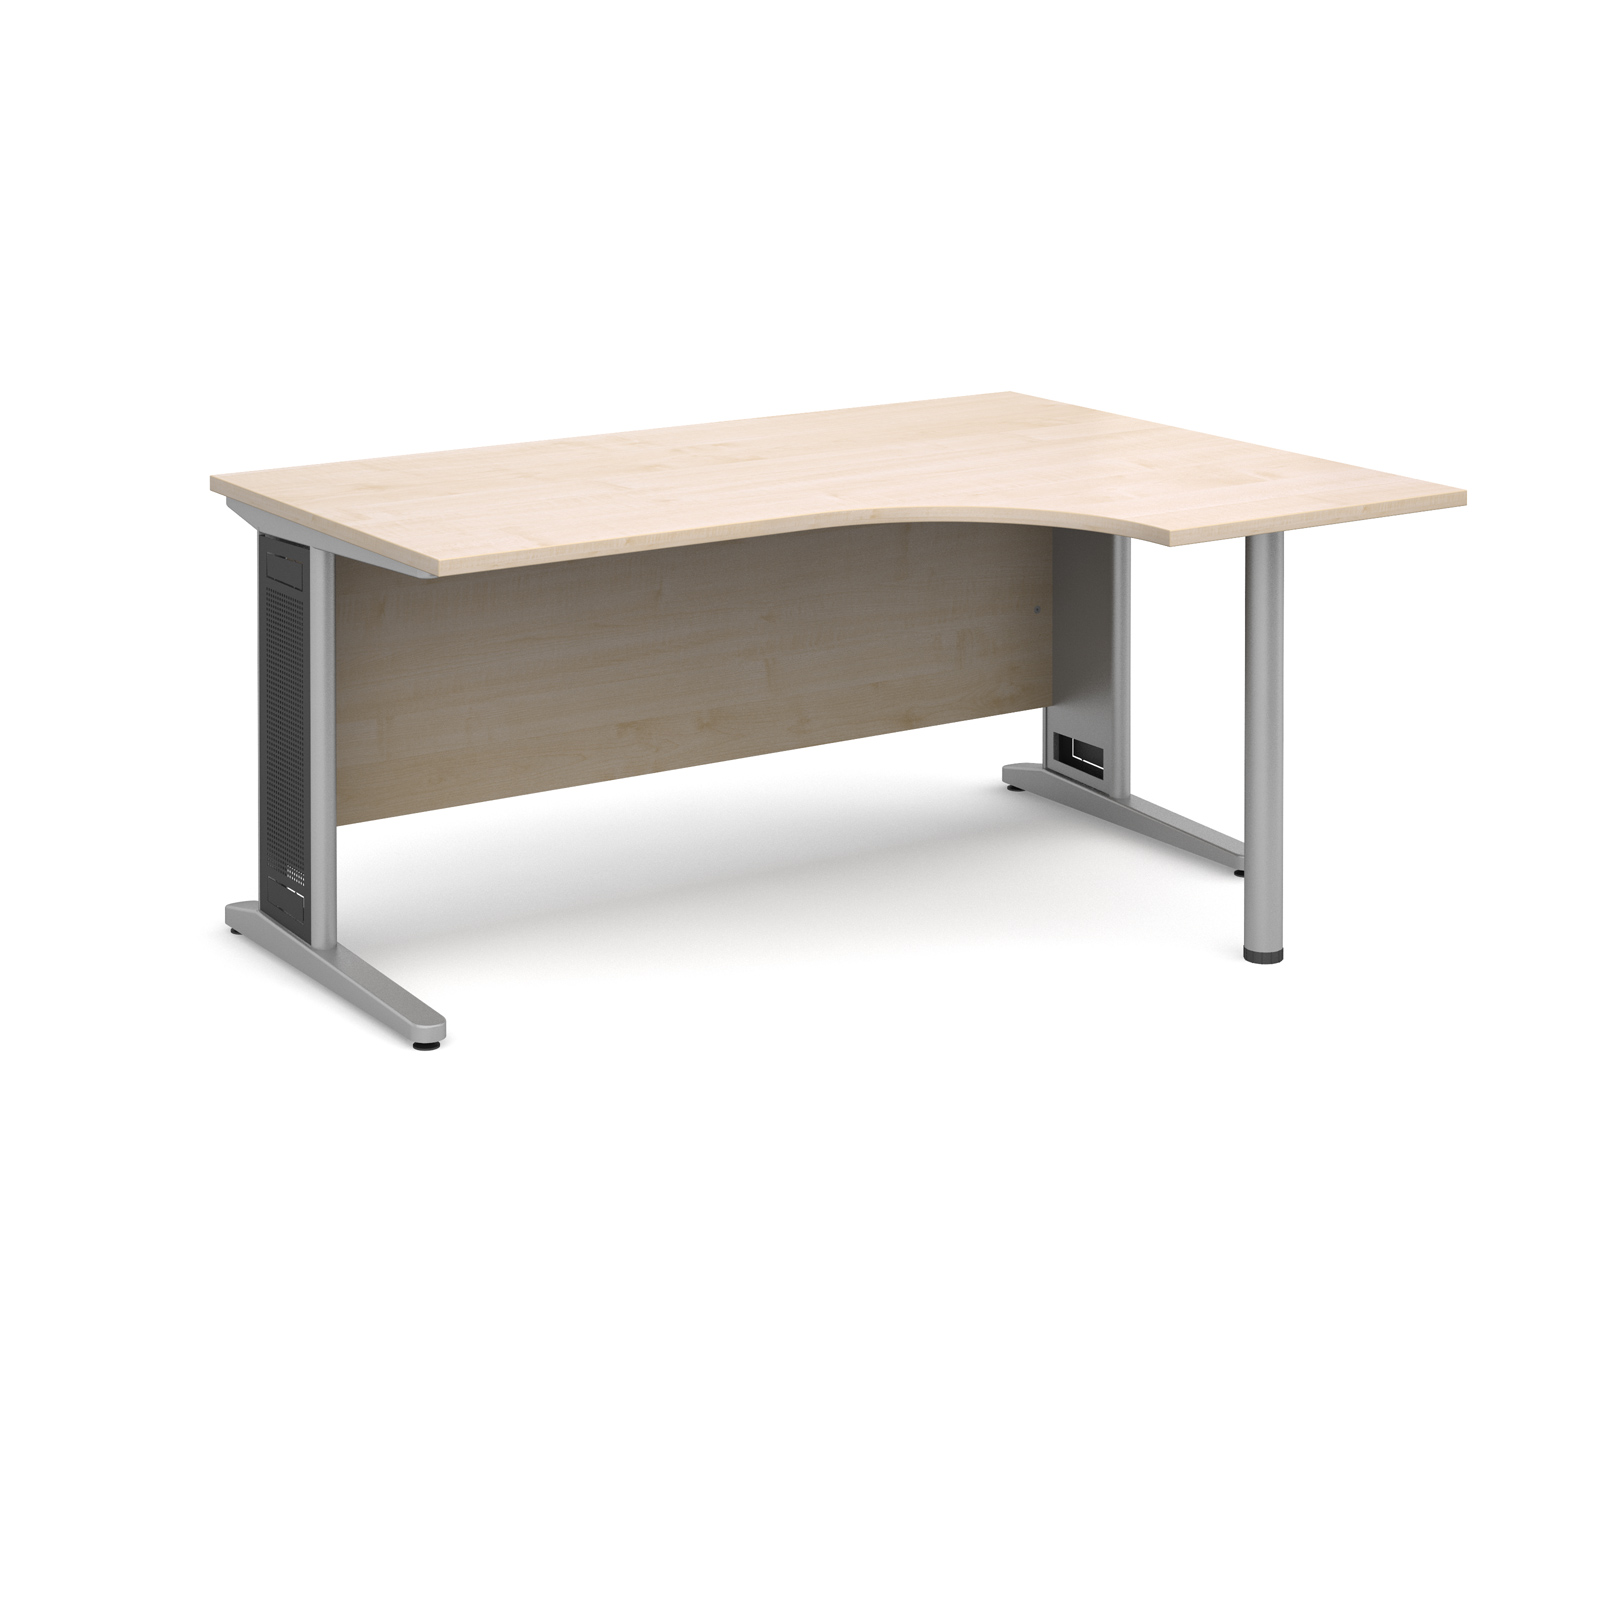 Largo right hand ergonomic desk 1600mm - silver cantilever frame with removable grill, maple top